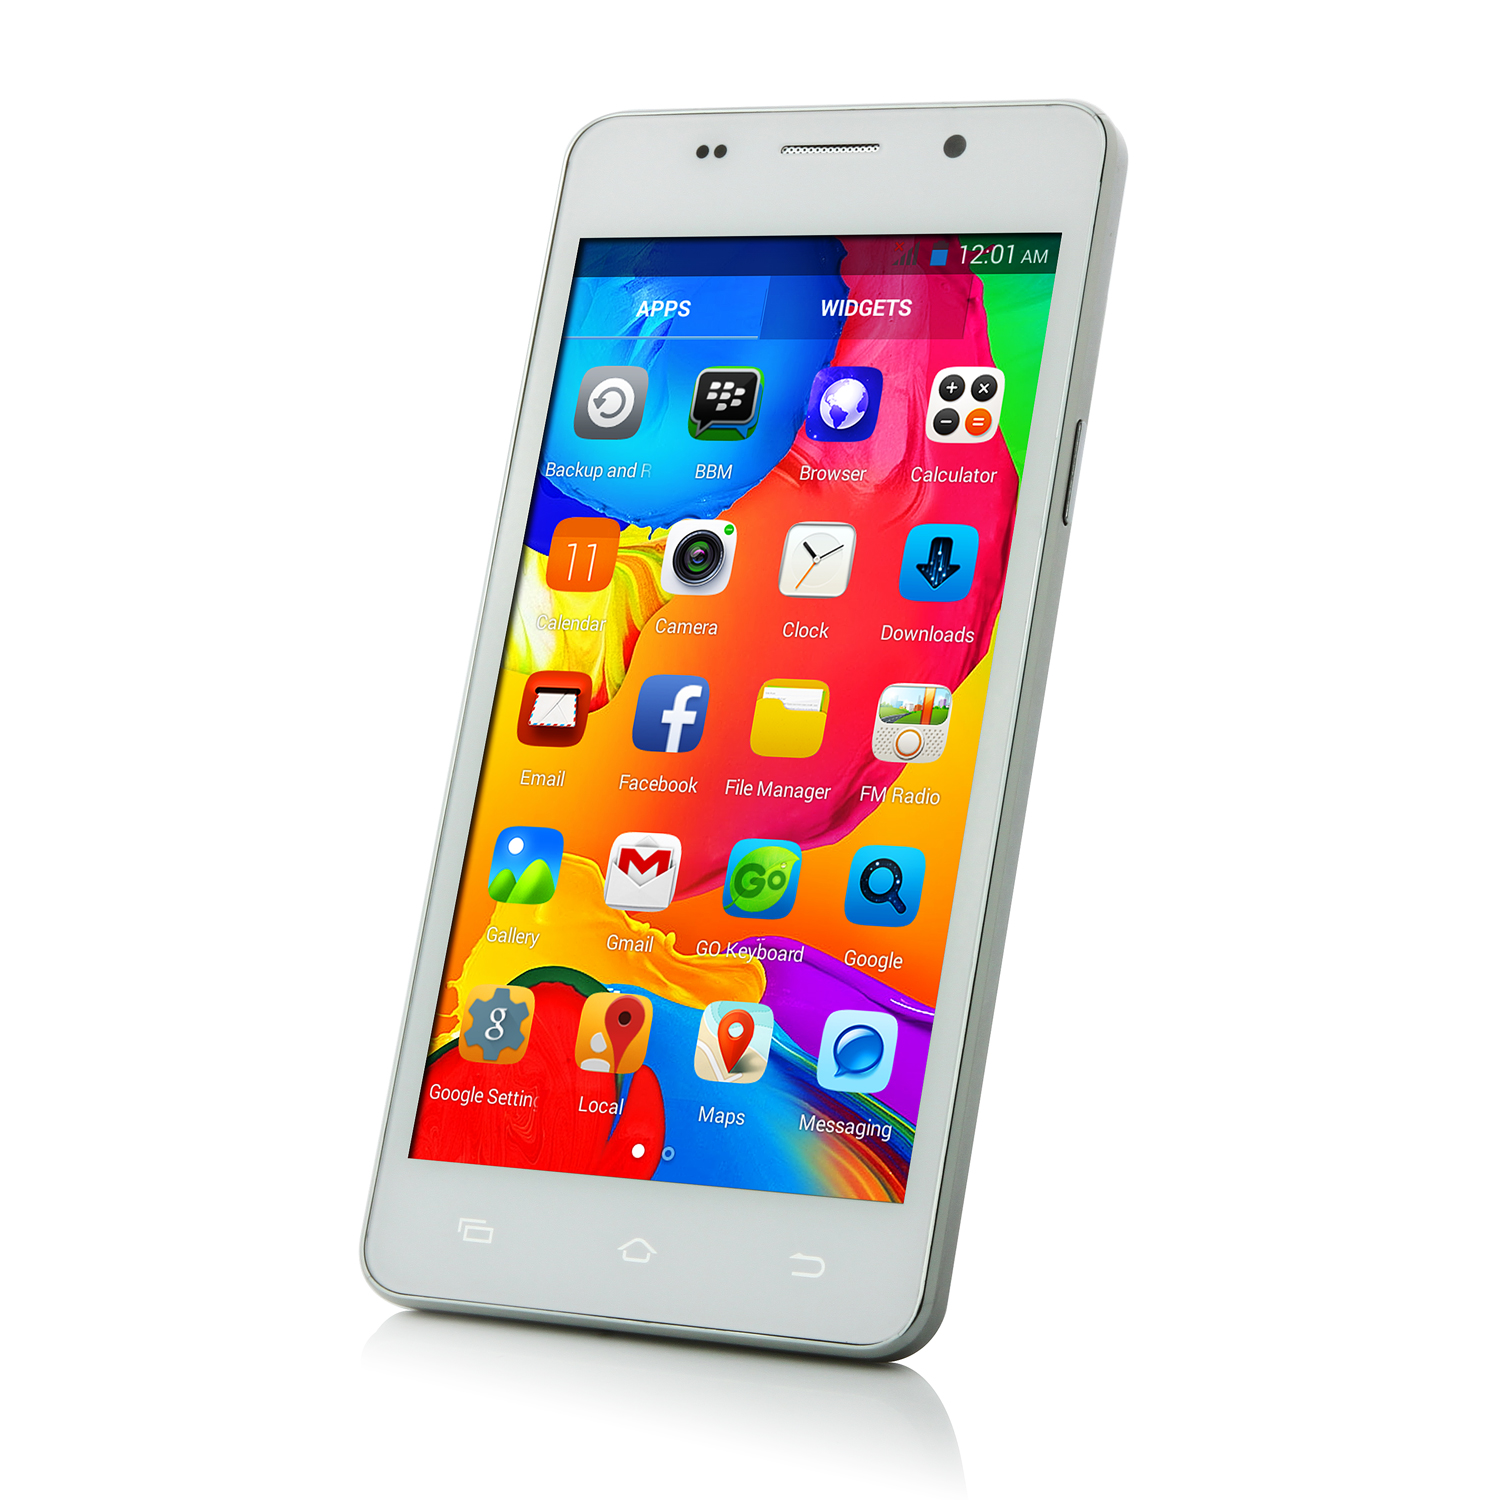 JIAKE M4 Smartphone Android 4.4 MTK6572 Dual Quad 5.0 Inch 2800mAh Battery White